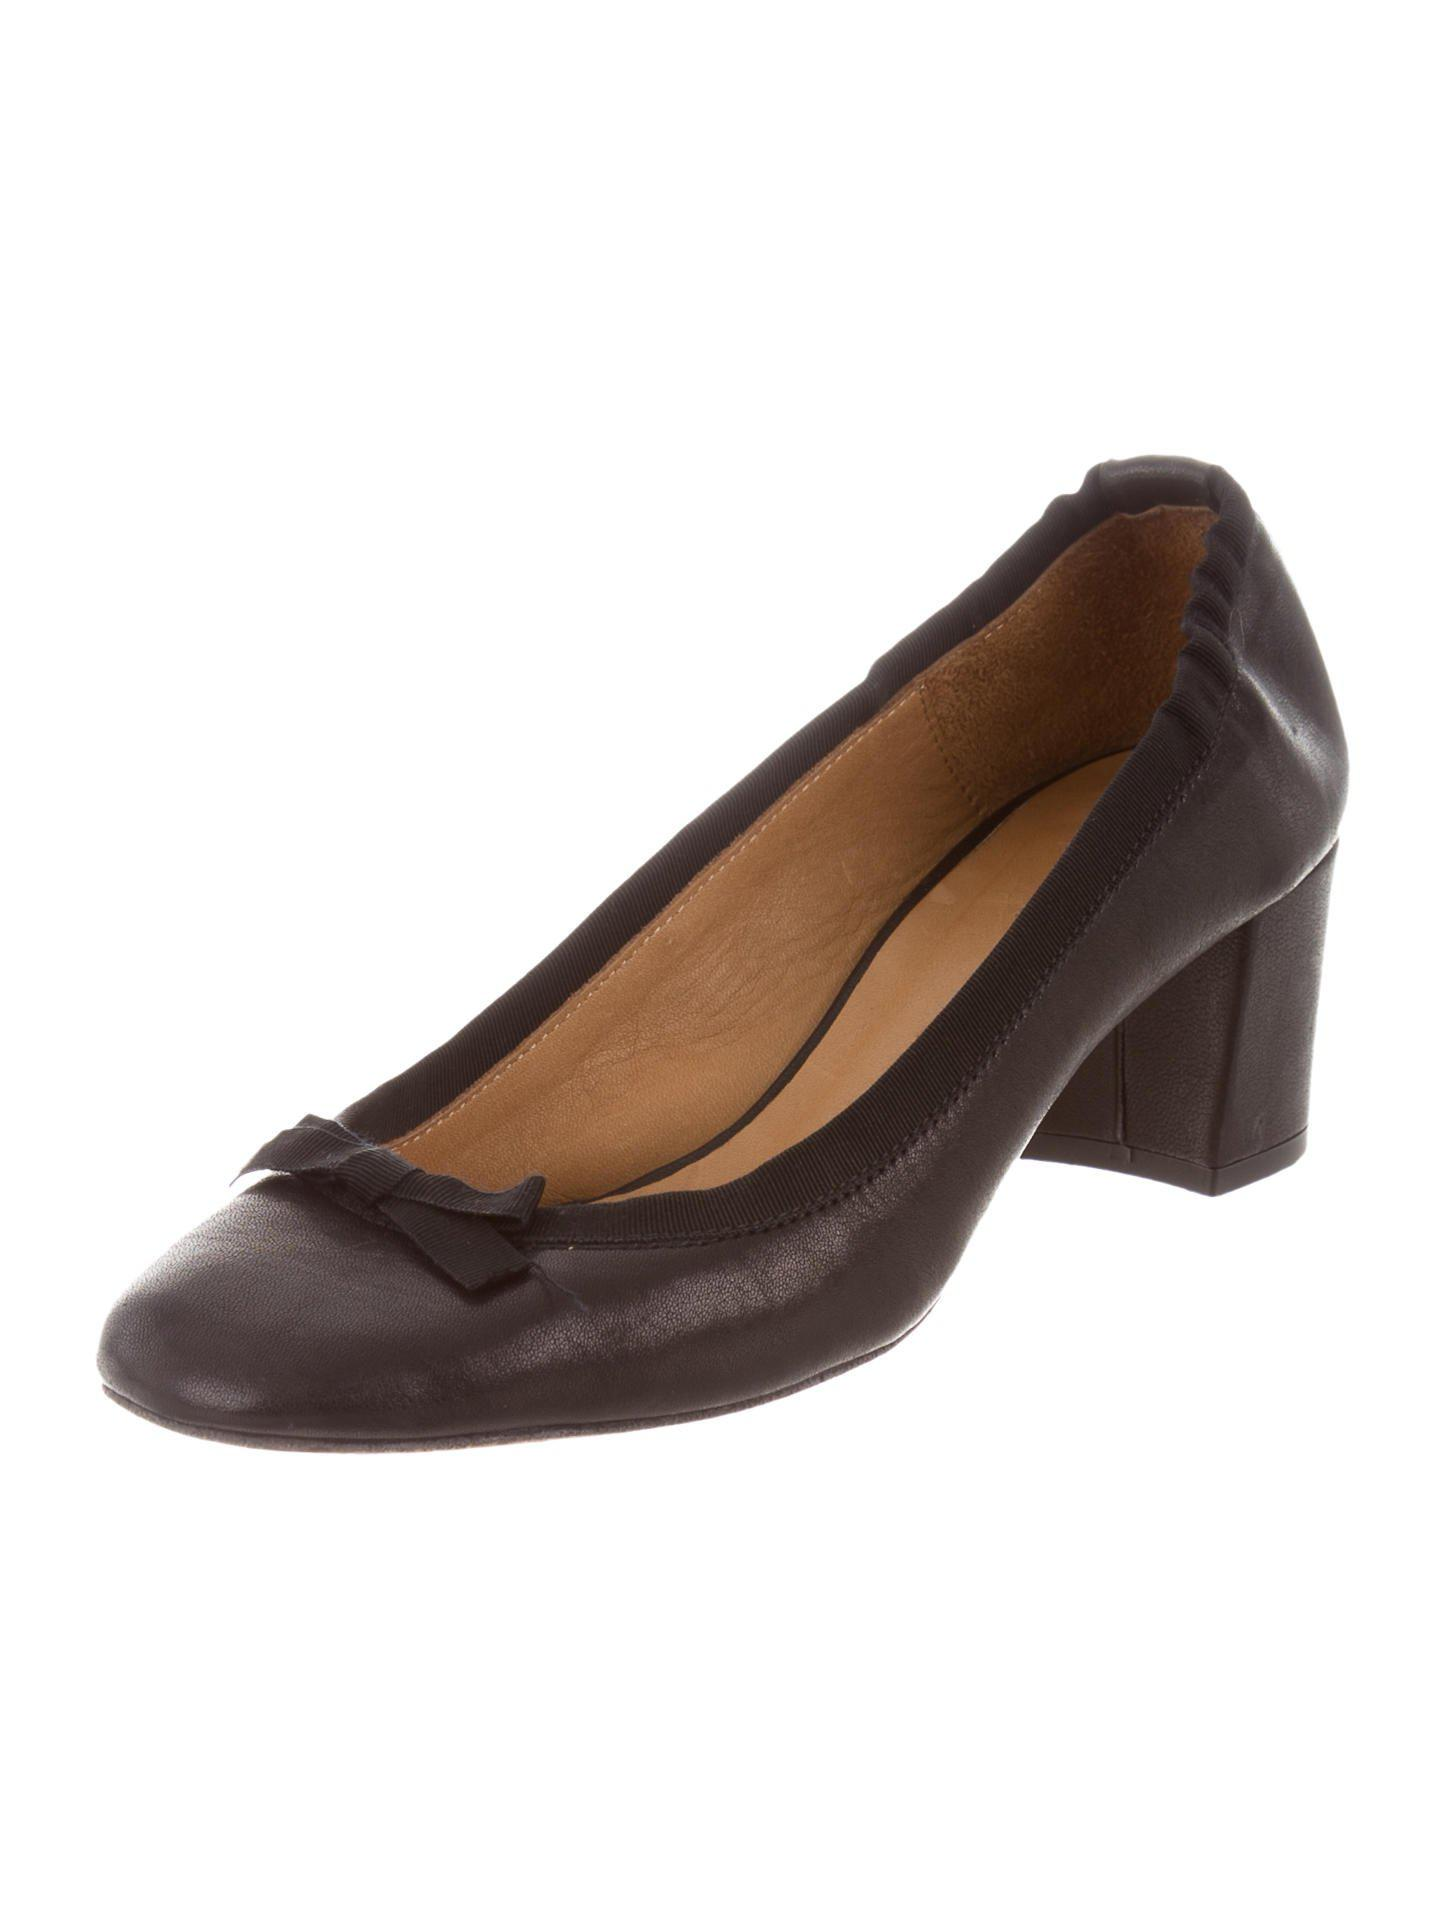 Isabel Marant Leather Square-Toe Pumps free shipping discount discount best store to get xl4e7O